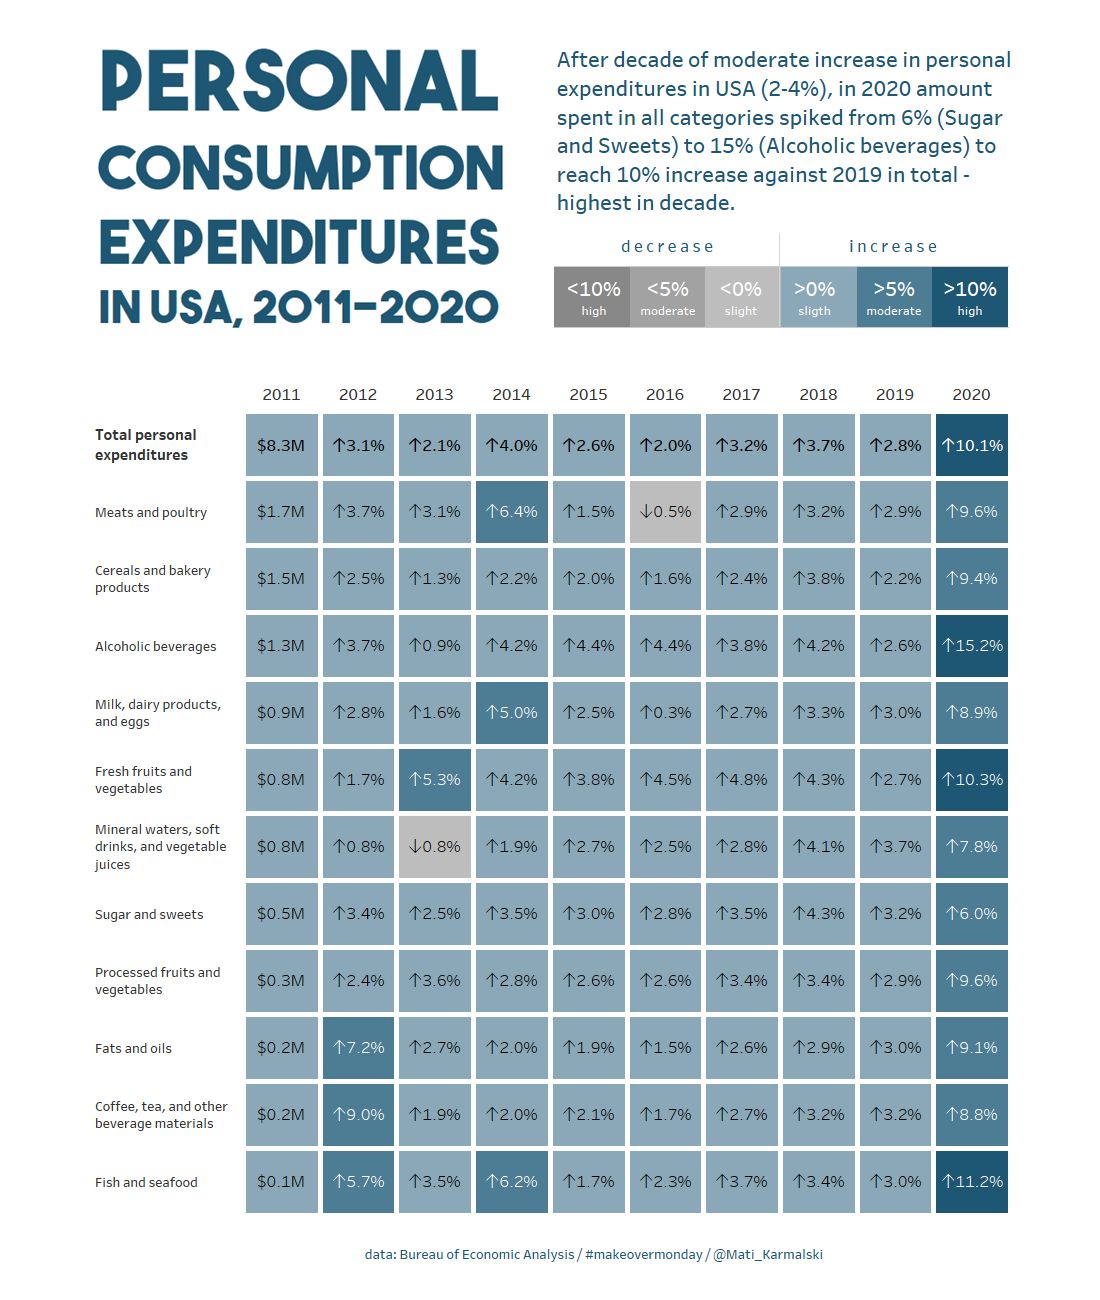 Personal consumption expenditures in USA 2011-2020